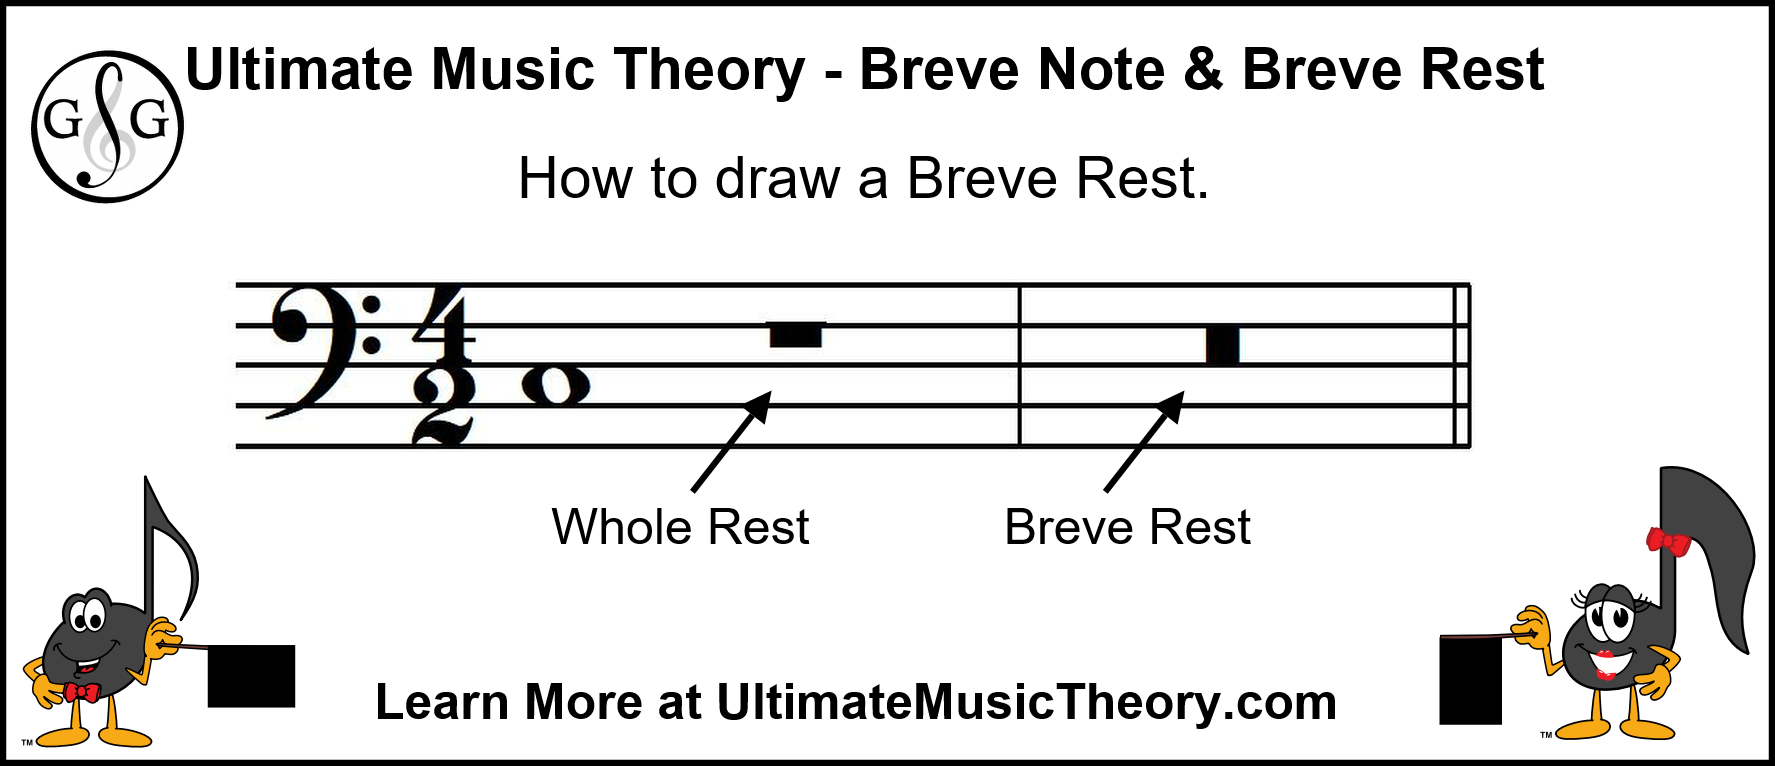 Ultimate Music Theory - How to draw a Breve Rest